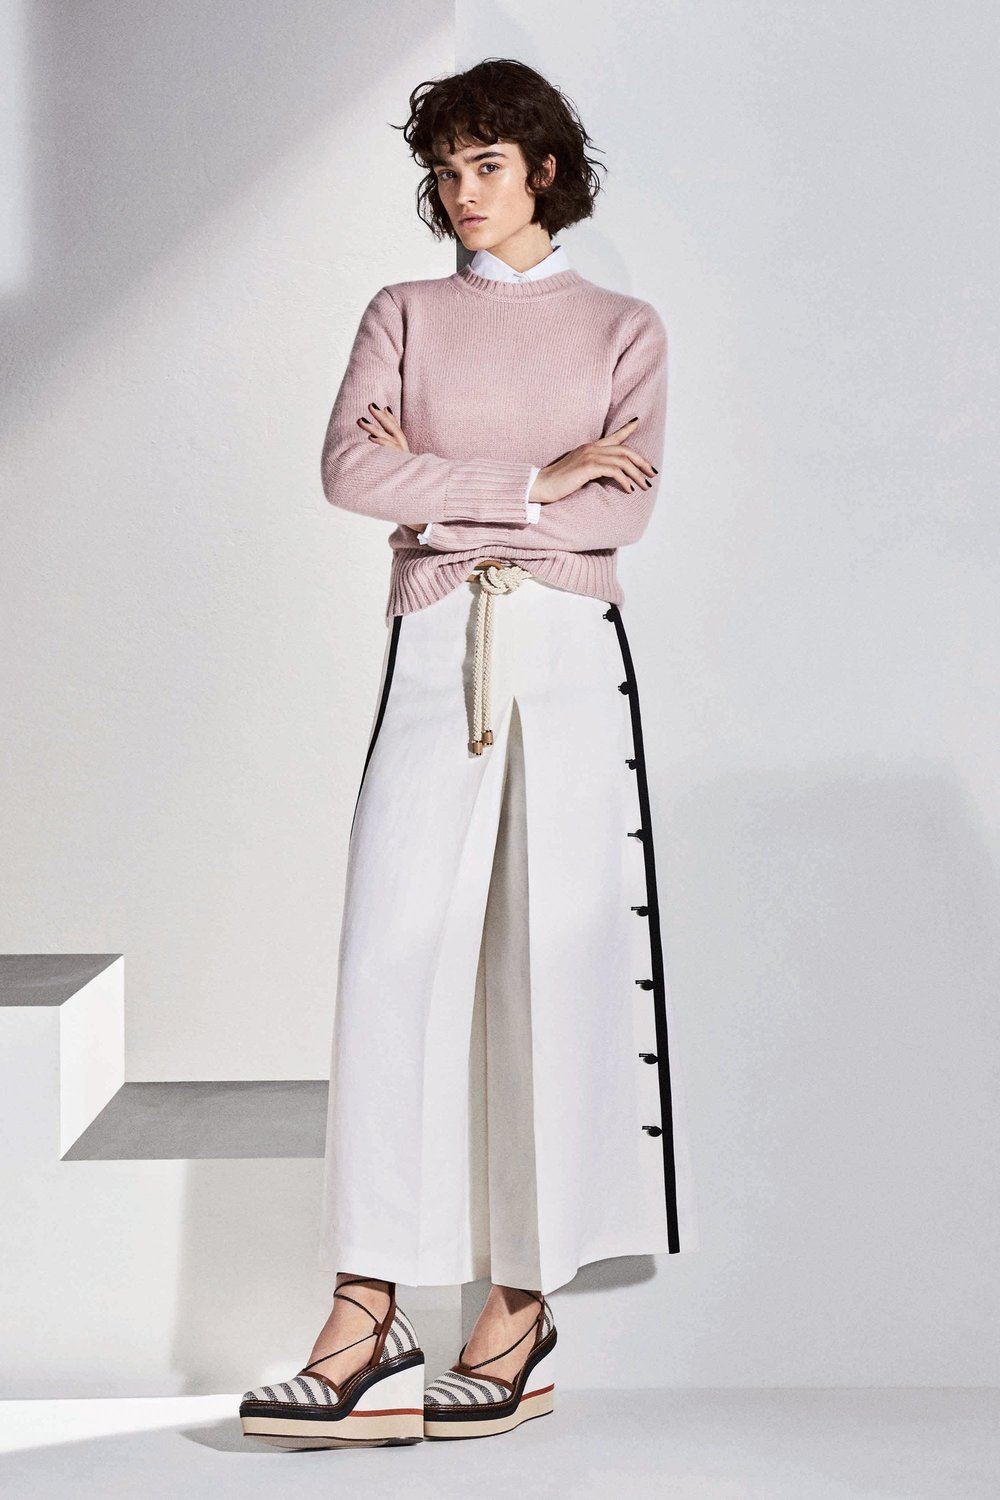 21-Max-Mara-Resort-18.jpg